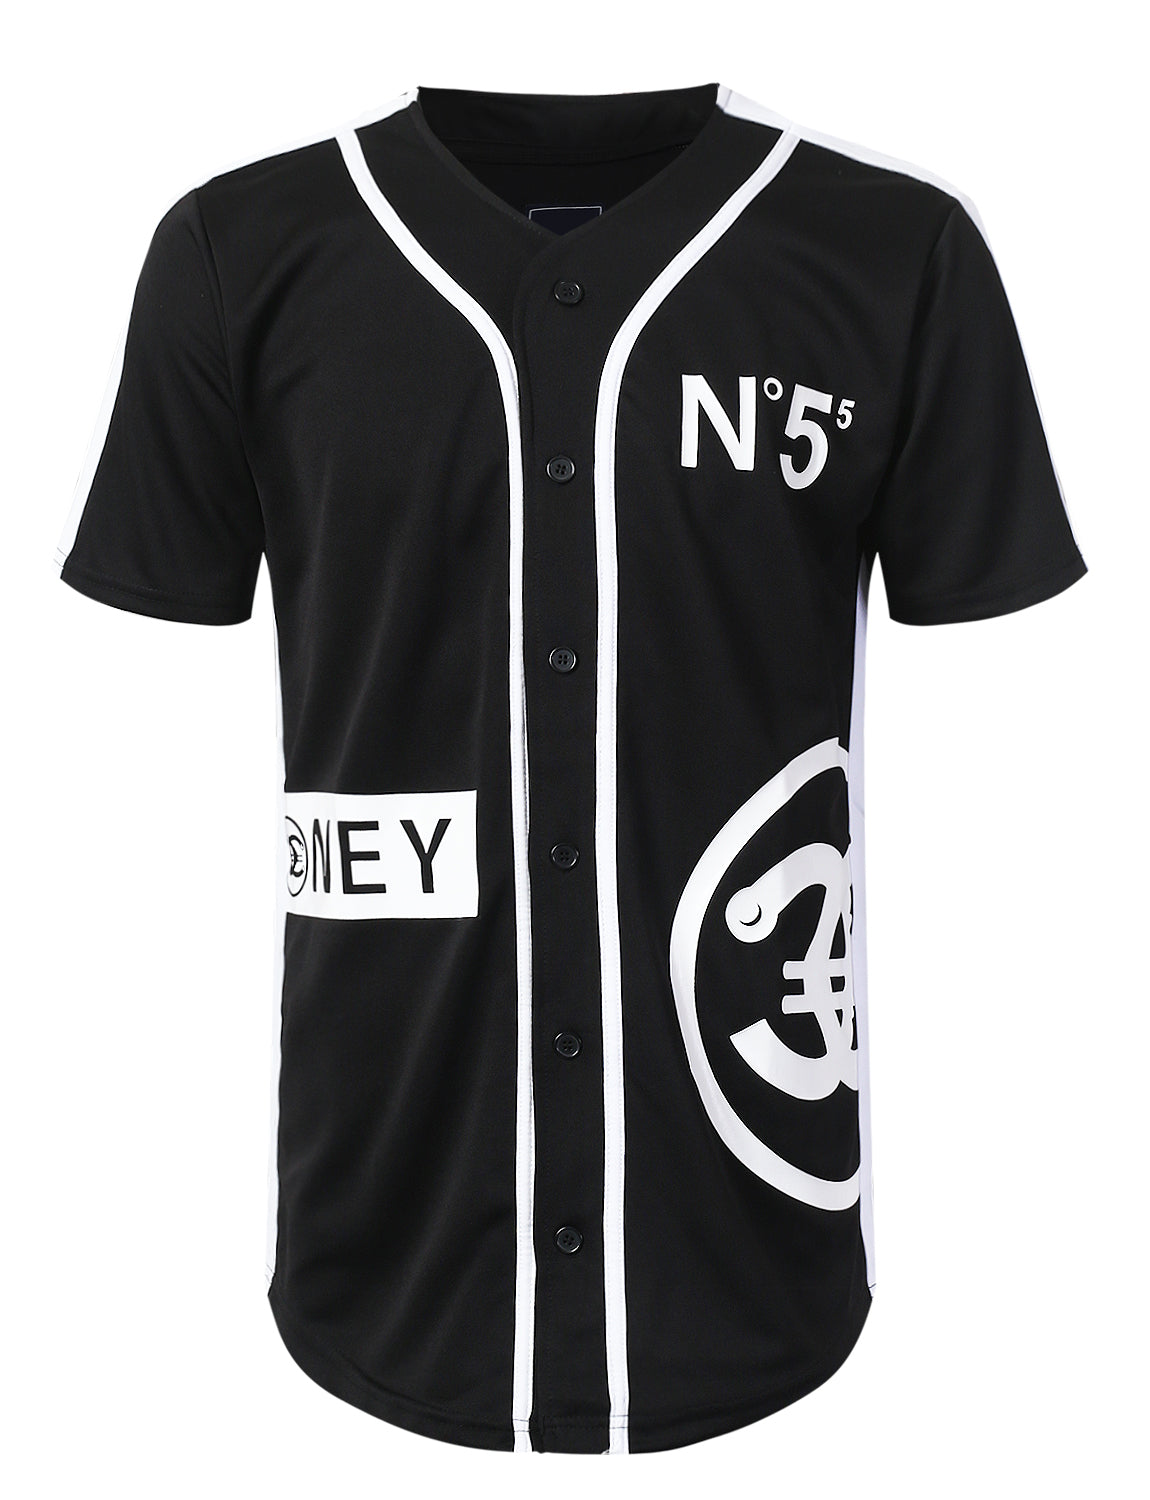 BLACK Logo Taping Baseball Jersey T-shirt - URBANCREWS